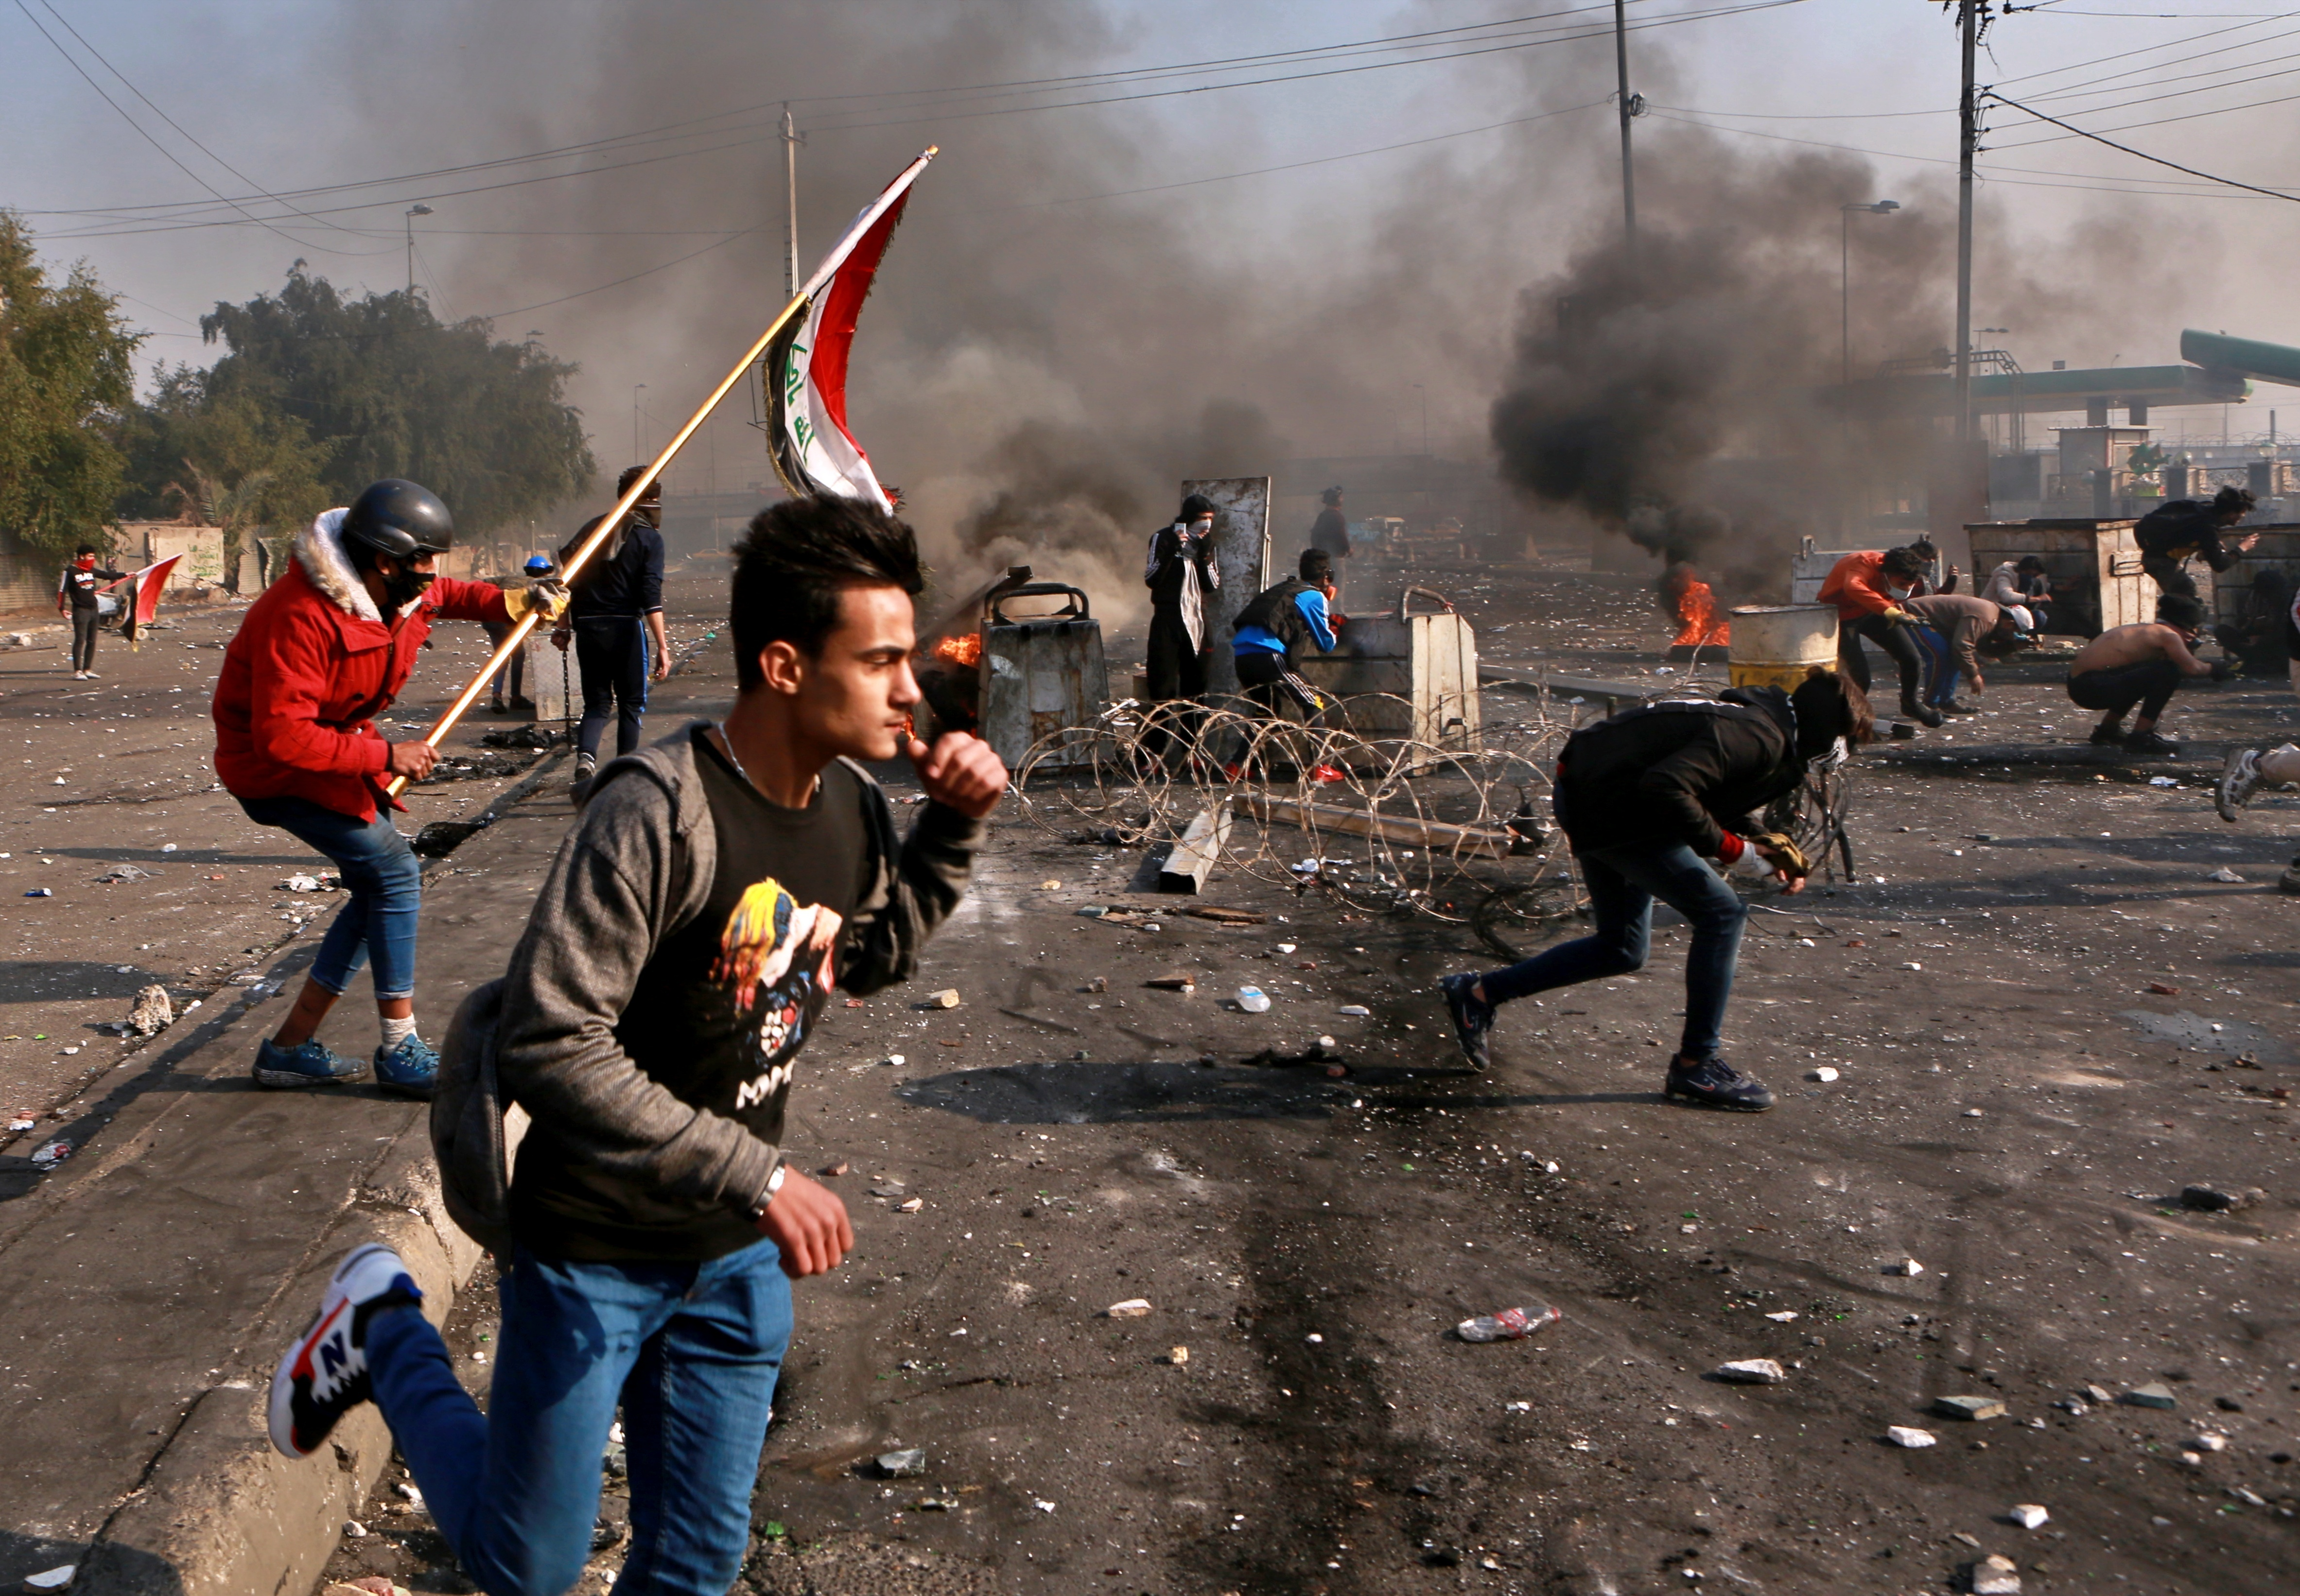 Iraqi officials: 3 dead, dozens wounded in Baghdad protests